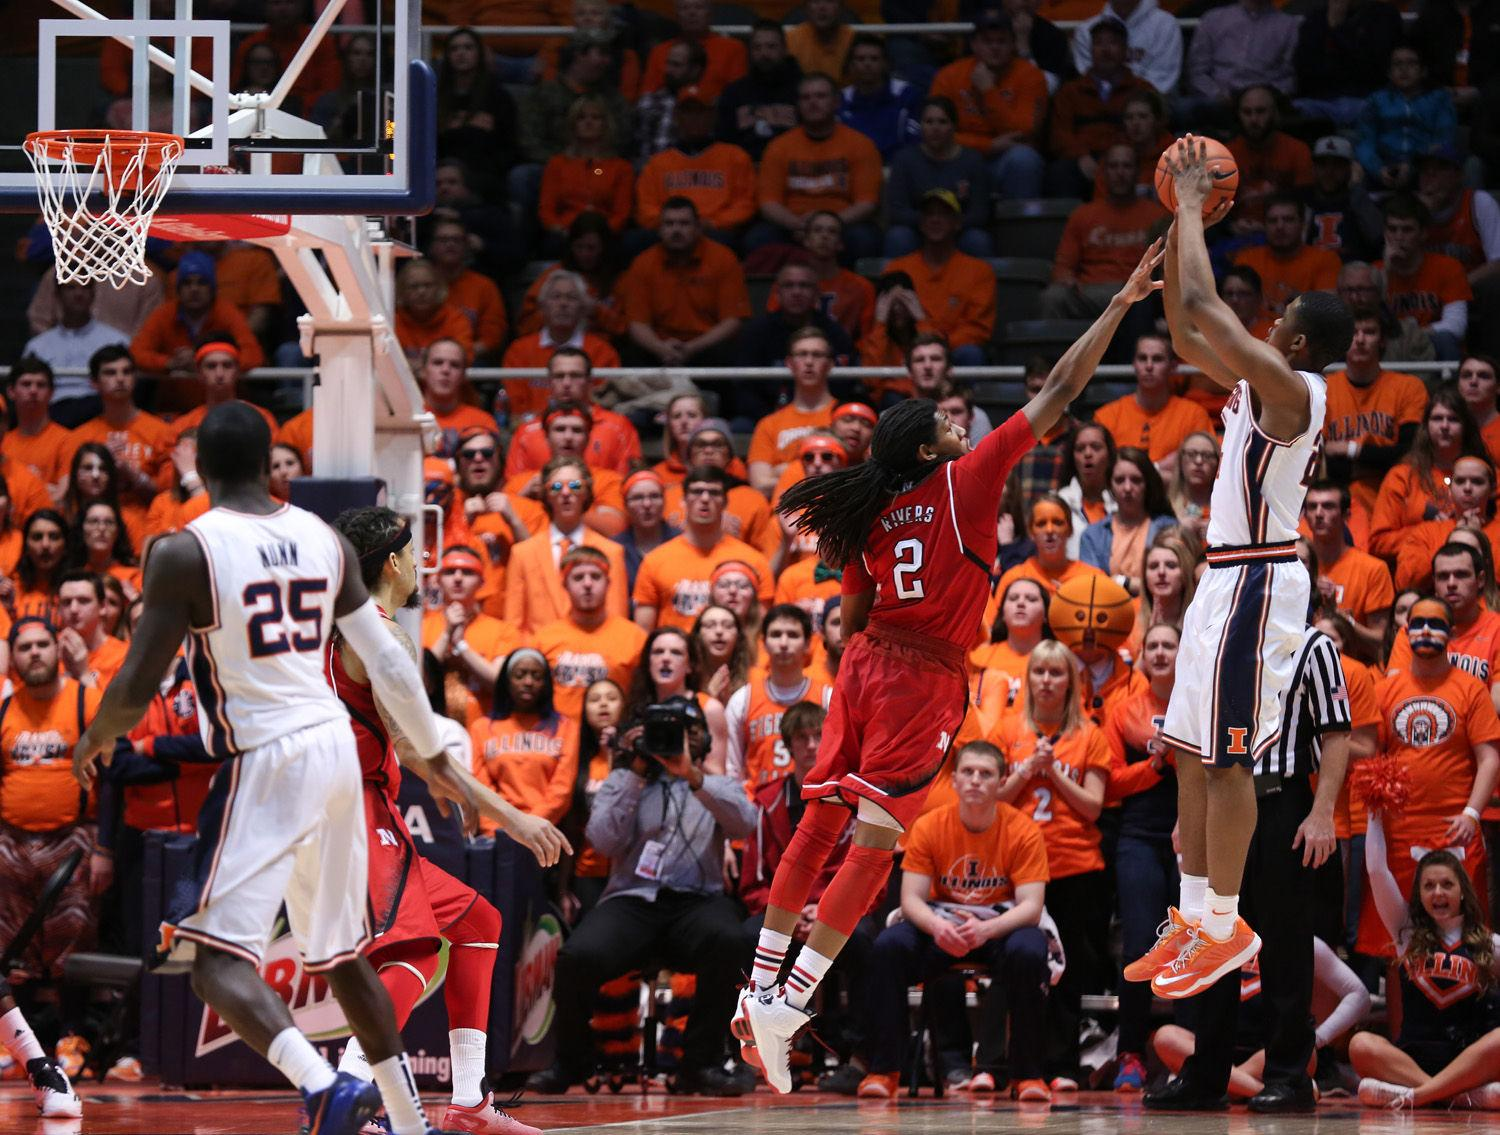 Illinois' Malcolm Hill (21) takes a fadeaway jumpshot during the game against Nebraska at State Farm Center, on Wednesday, March 5, 2015. The Illini won 69-57.